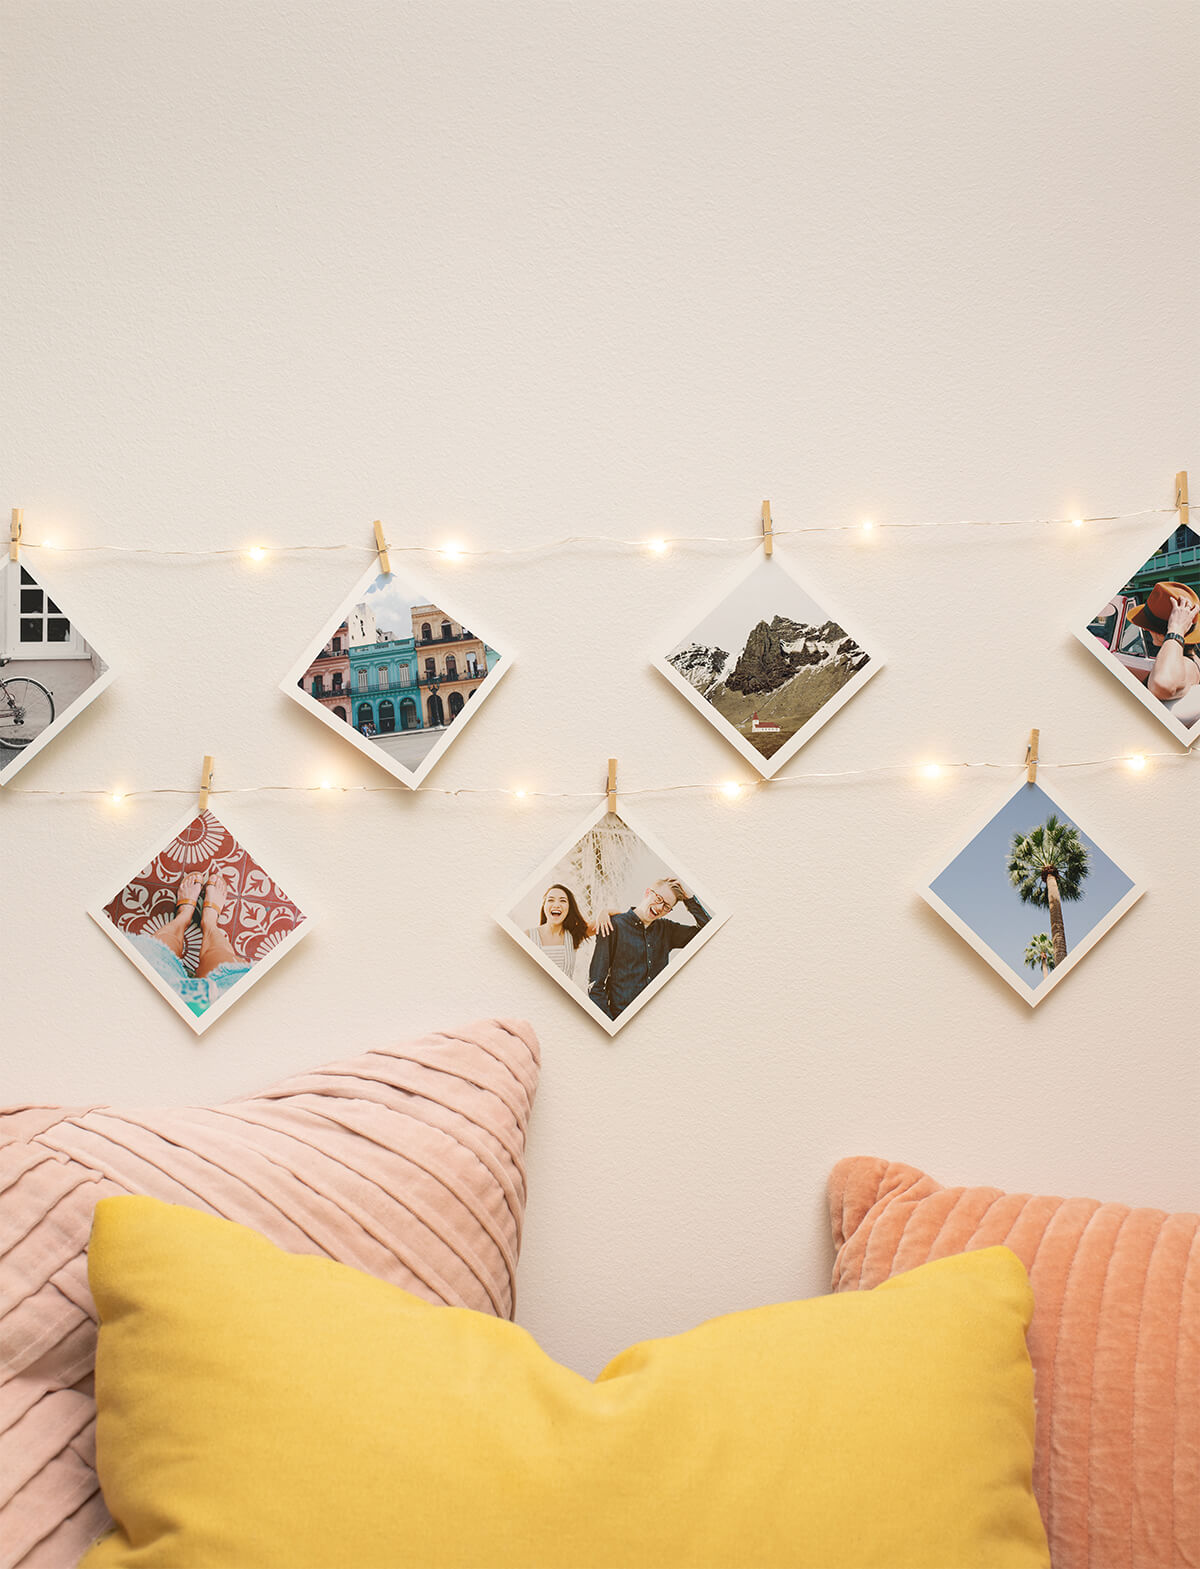 Diagonally rotated square prints hanging from lit up string lights